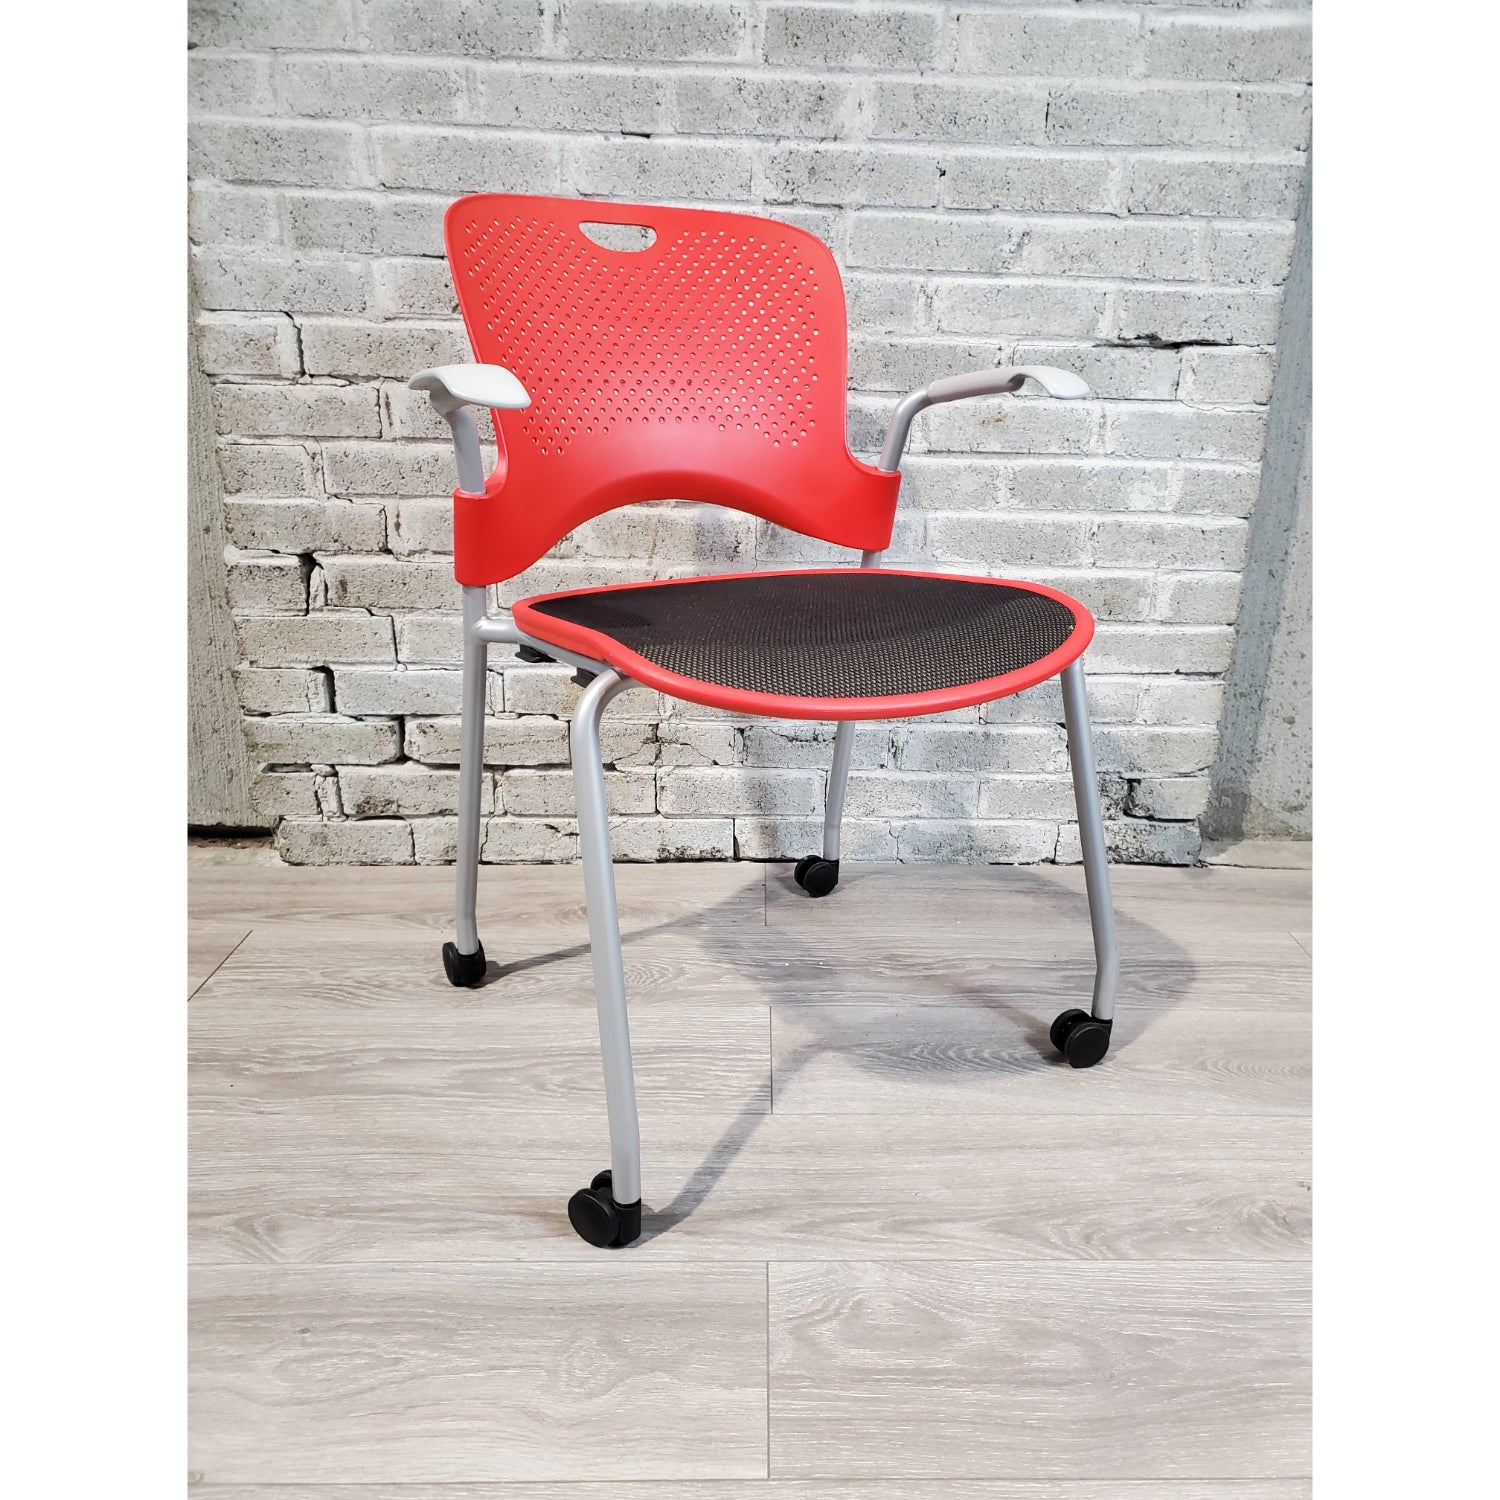 Pre-Owned - Used Herman Miller Caper Side Chair with Casters - Red - Duckys Office Furniture